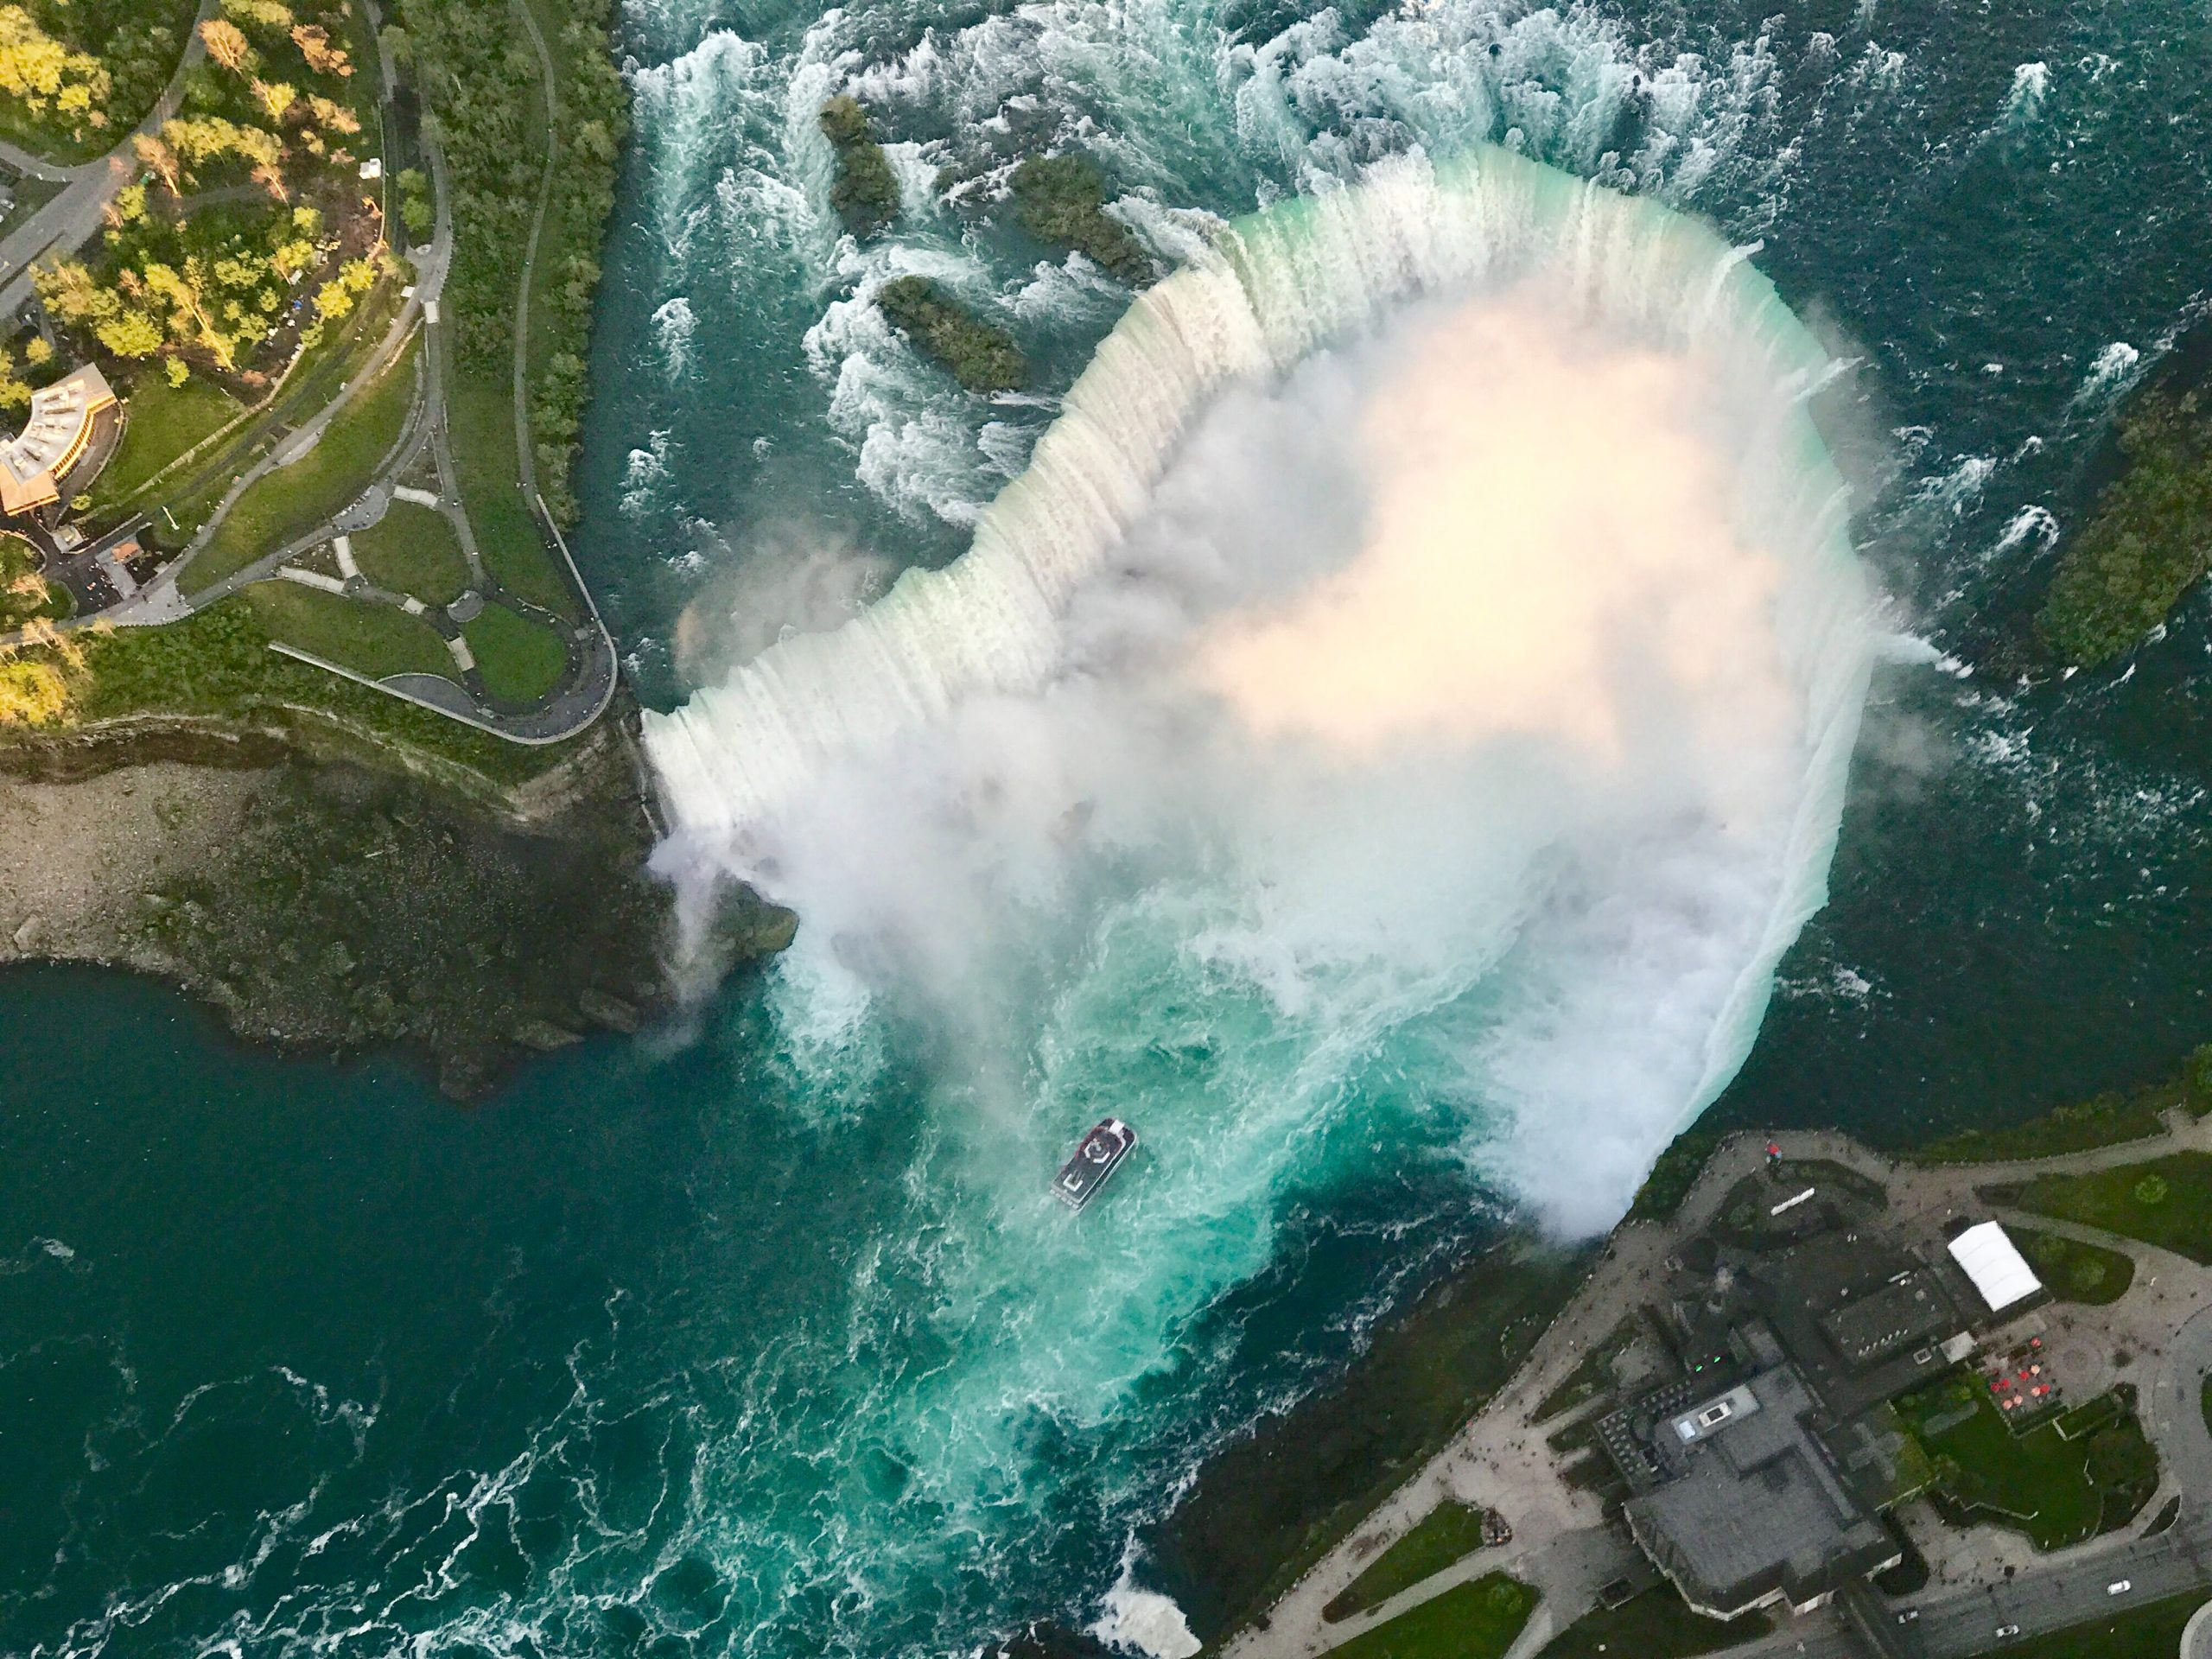 niagara falls hotels with view of the falls